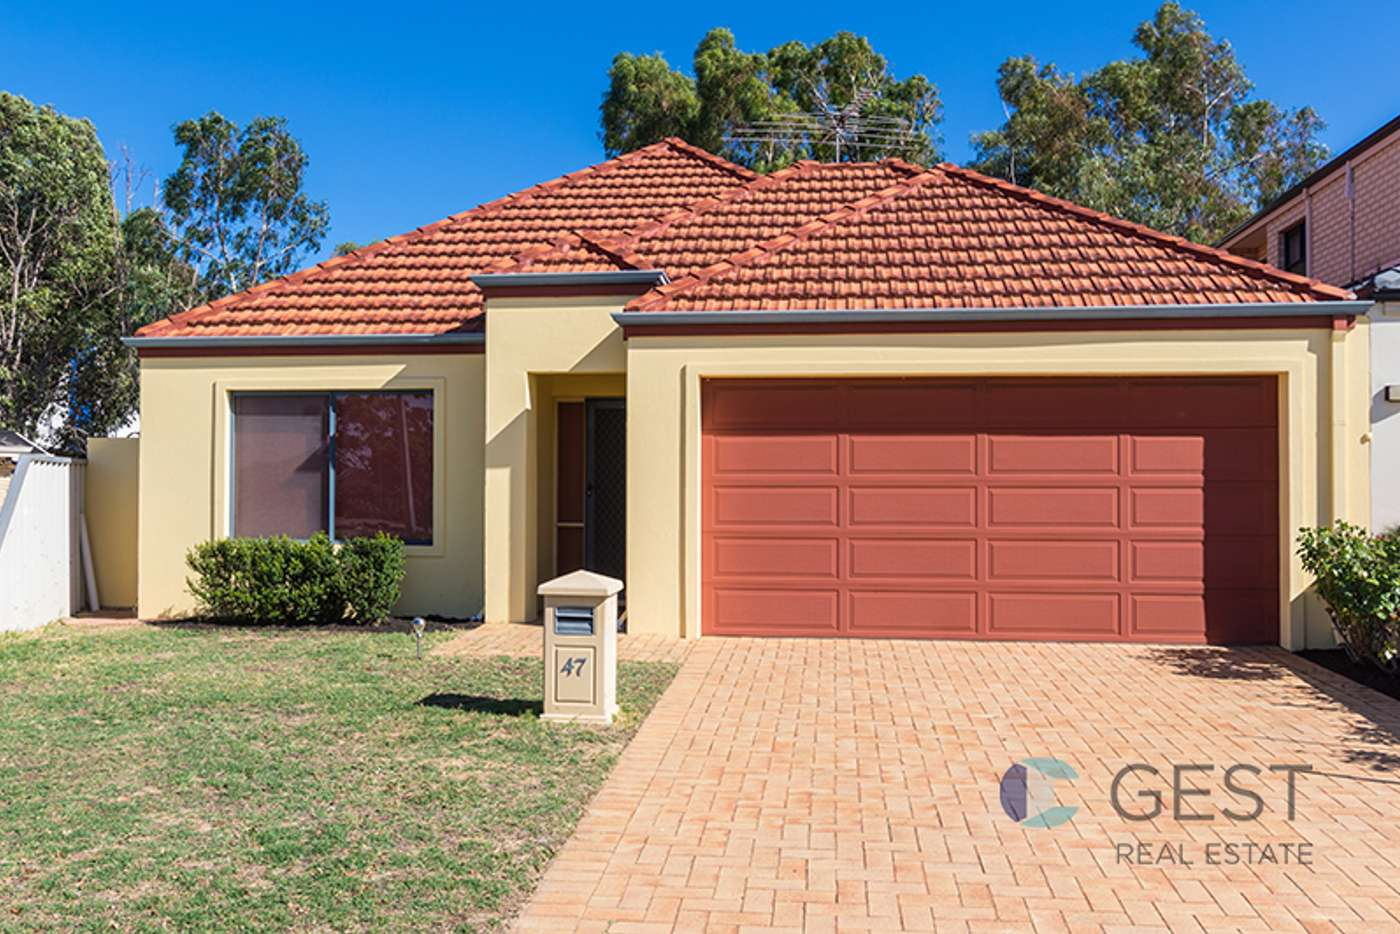 Main view of Homely house listing, 47 ELYARD CRESCENT, Stirling WA 6021